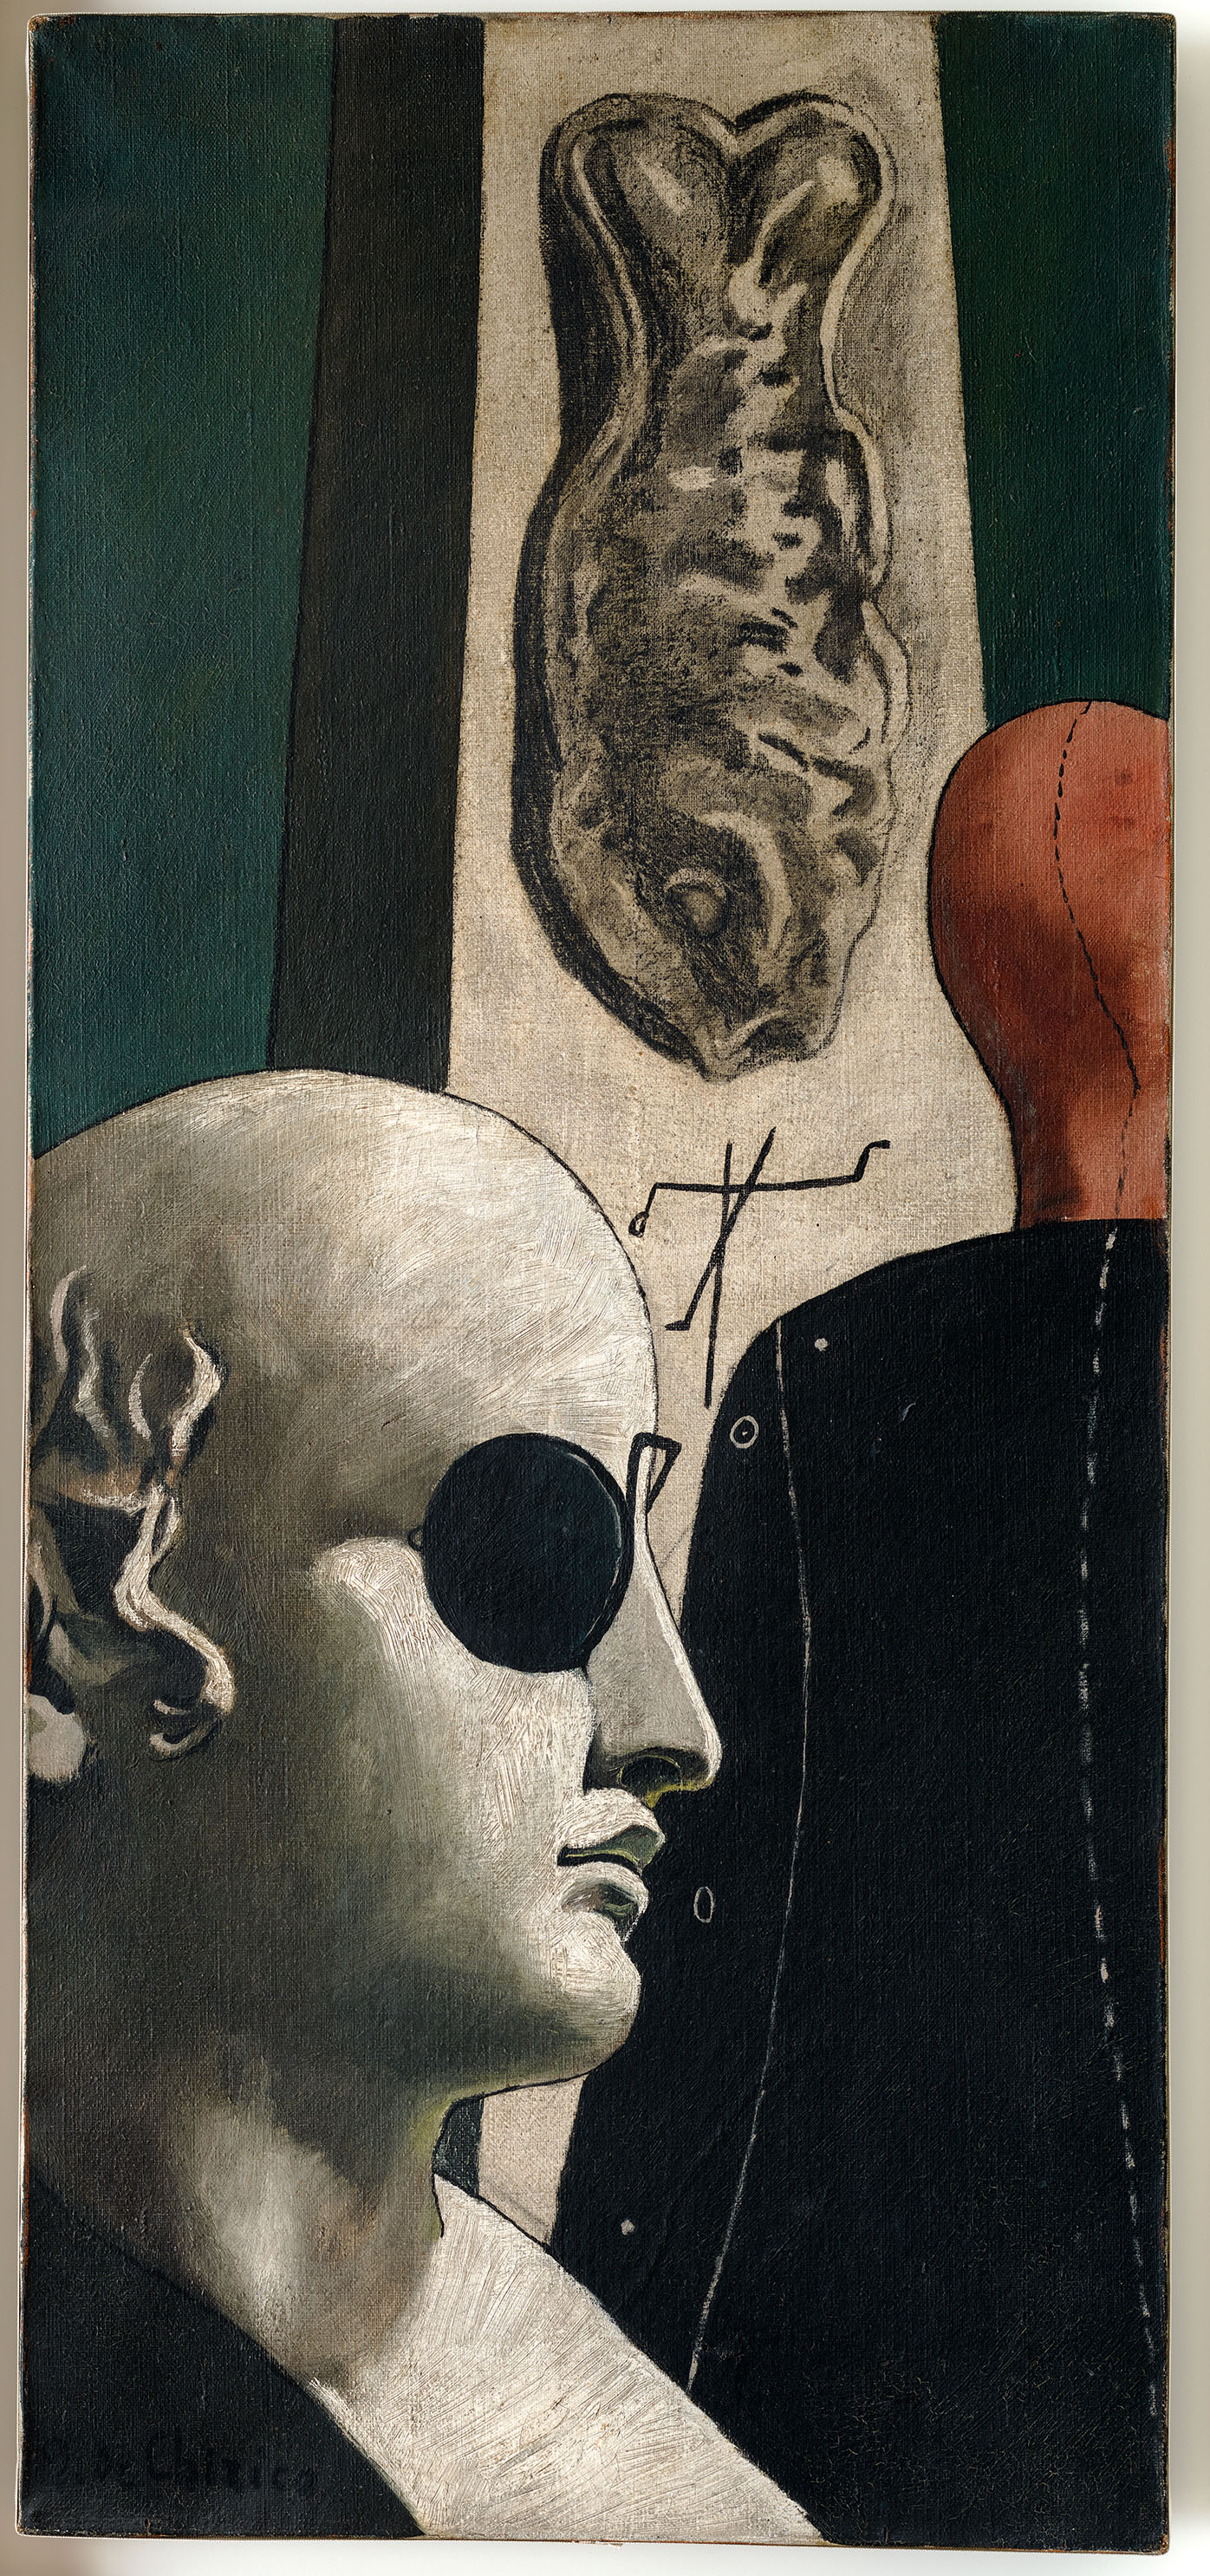 Giorgio de Chirico Die Sehnsucht des Dichters * La Nostalgie du poète, 1914 Öl und Kohle auf Leinwand,  89,7 × 40,7 cm Venedig, Peggy Guggenheim Collection, New York, Solomon R. Guggenheim Foundation